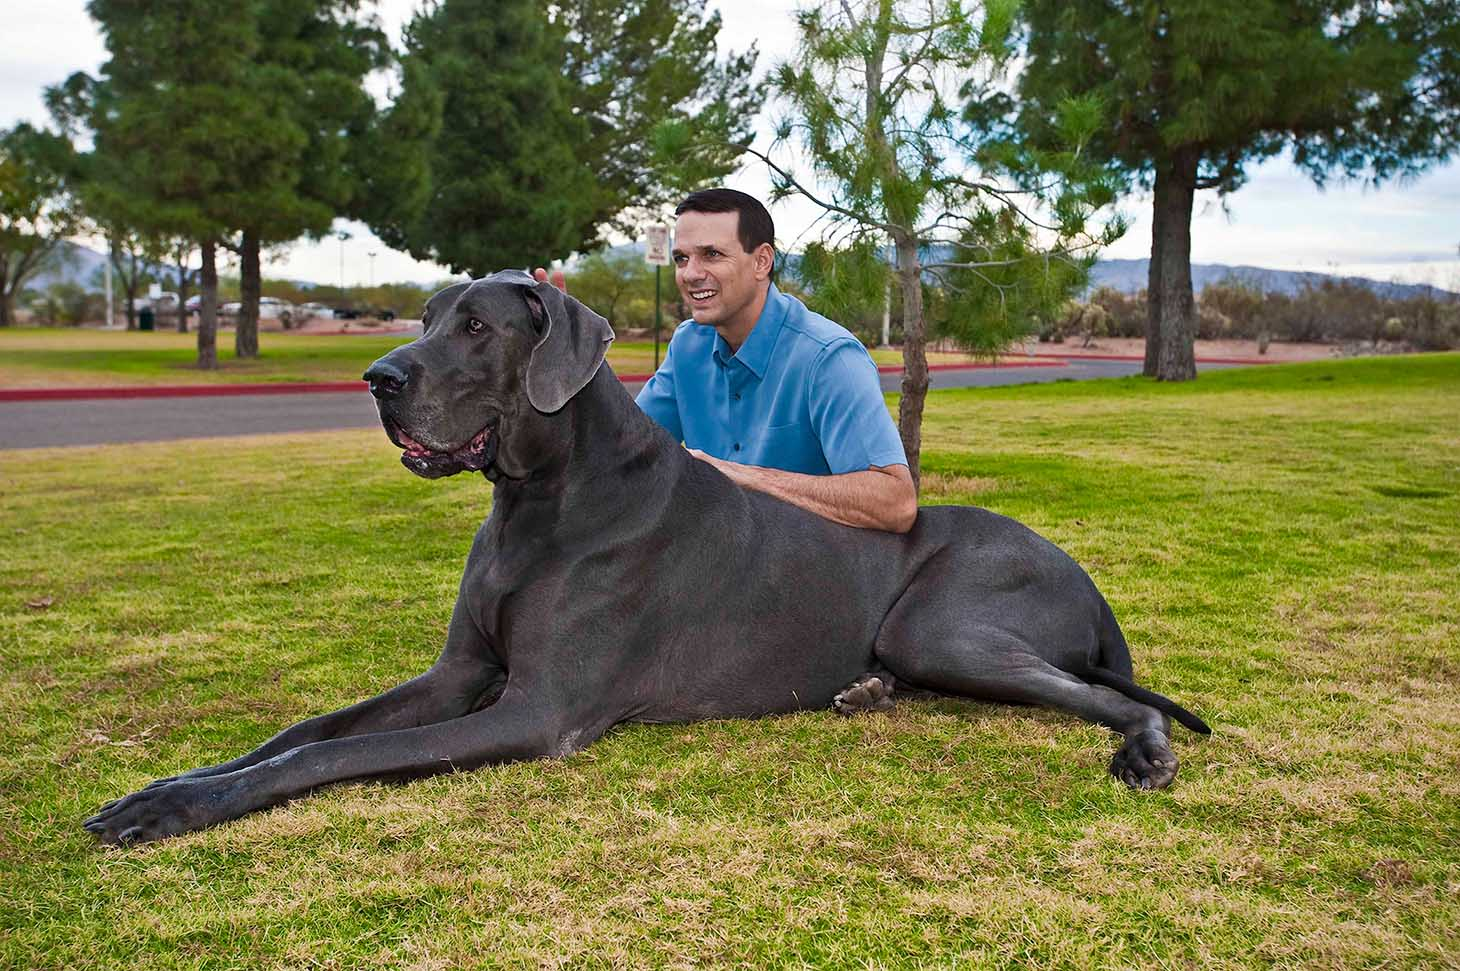 Amazing World: Giant George - The Tallest & The Largest in